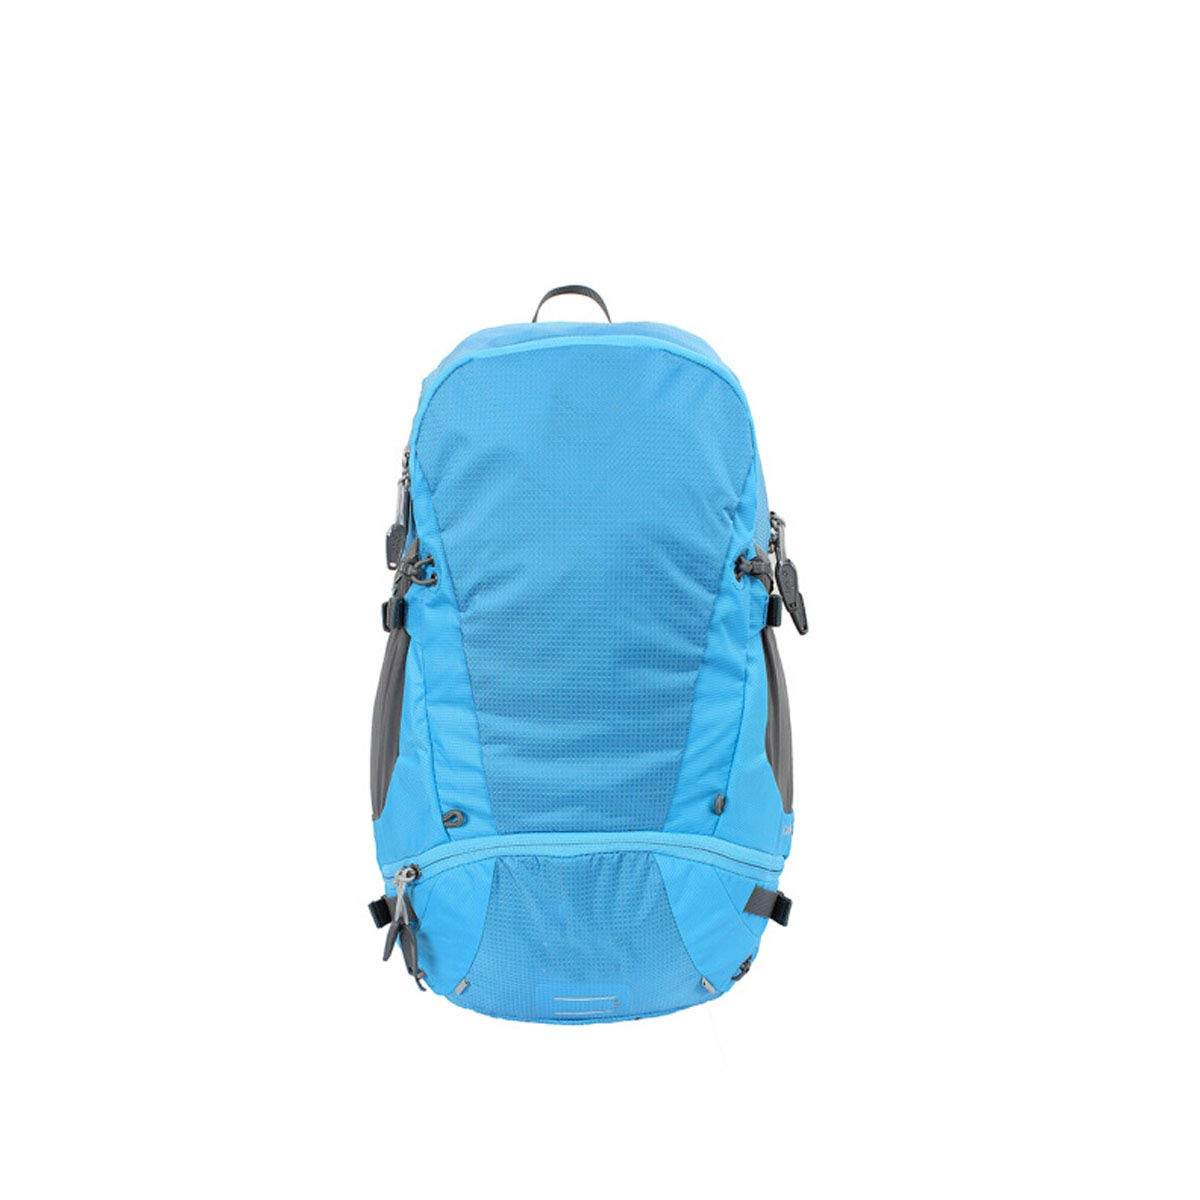 Chenjinxiang Casual Ultra Lightweight Comfortable Travel Backpack, Blue (Color : Blue) by Chenjinxiang (Image #2)